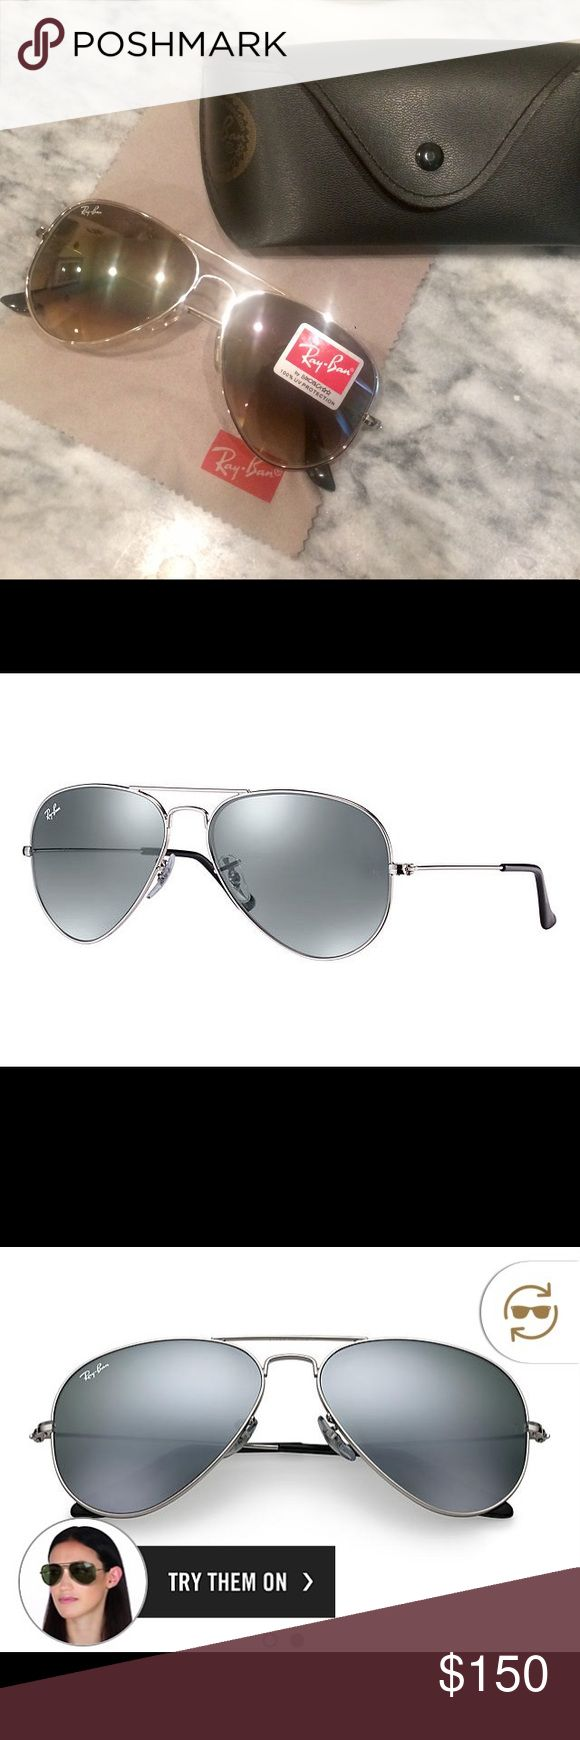 Ray Ban 3025 aviator- NEW polarized sunglasses Brand NEW Ray Ban's: Style rb3025 aviator lw 3277 58014. Silver frame, silver mirrored lenses, black stems, standard size. No prescription, purchased directly from website for $178. Unworn/unused, brand new, no scratches whatsoever! The glasses still have the Ray Ban sticker on the front of the outside lens. Comes with a cleaning cloth and a black faux leather sunglasses case with a bronze colored stamp on the outside and red lining on the…